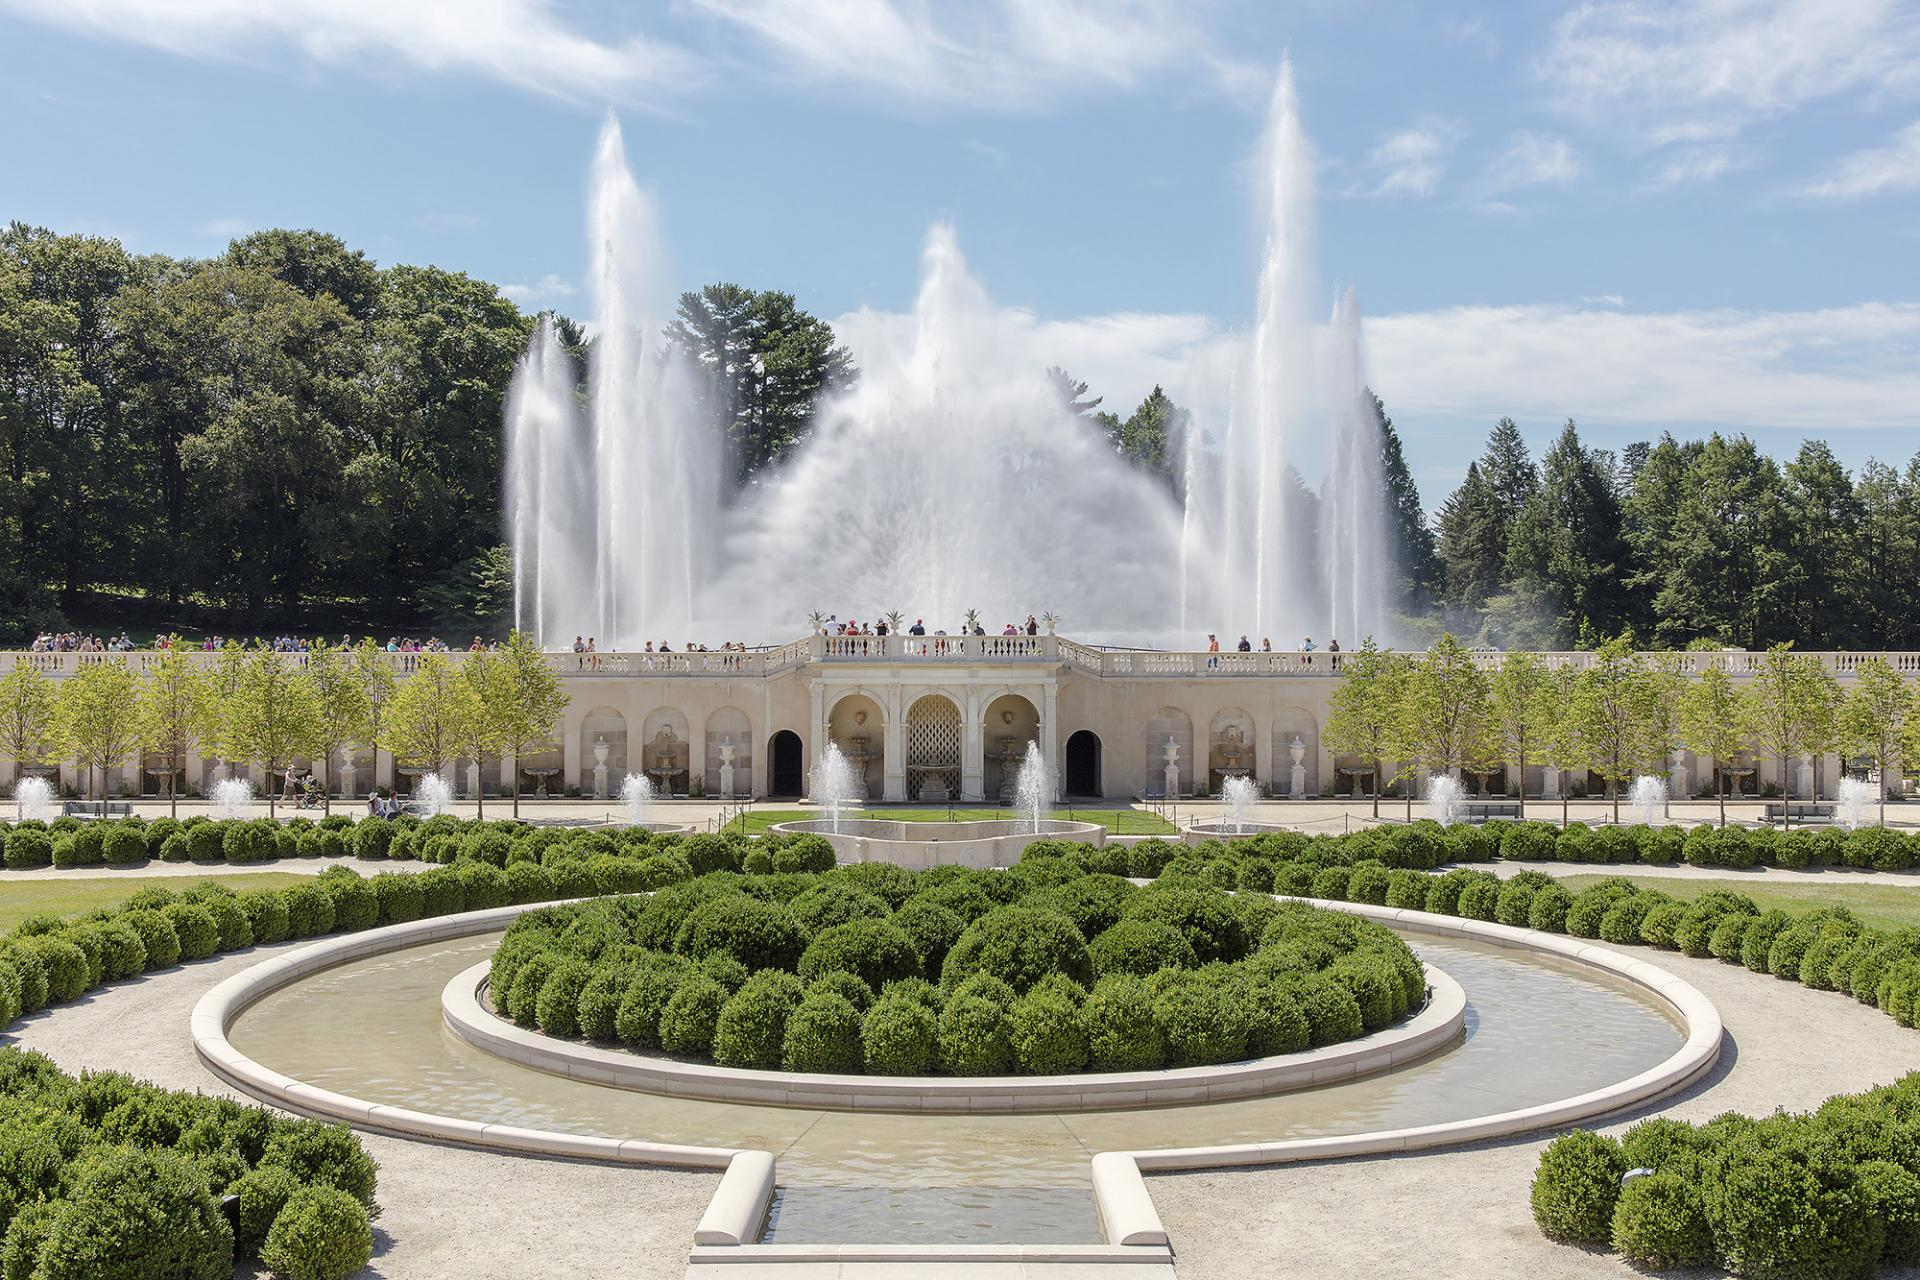 The Revitalized Main Fountain Garden At Longwood Recognized By The  Preservation Alliance For Greater Philadelphia